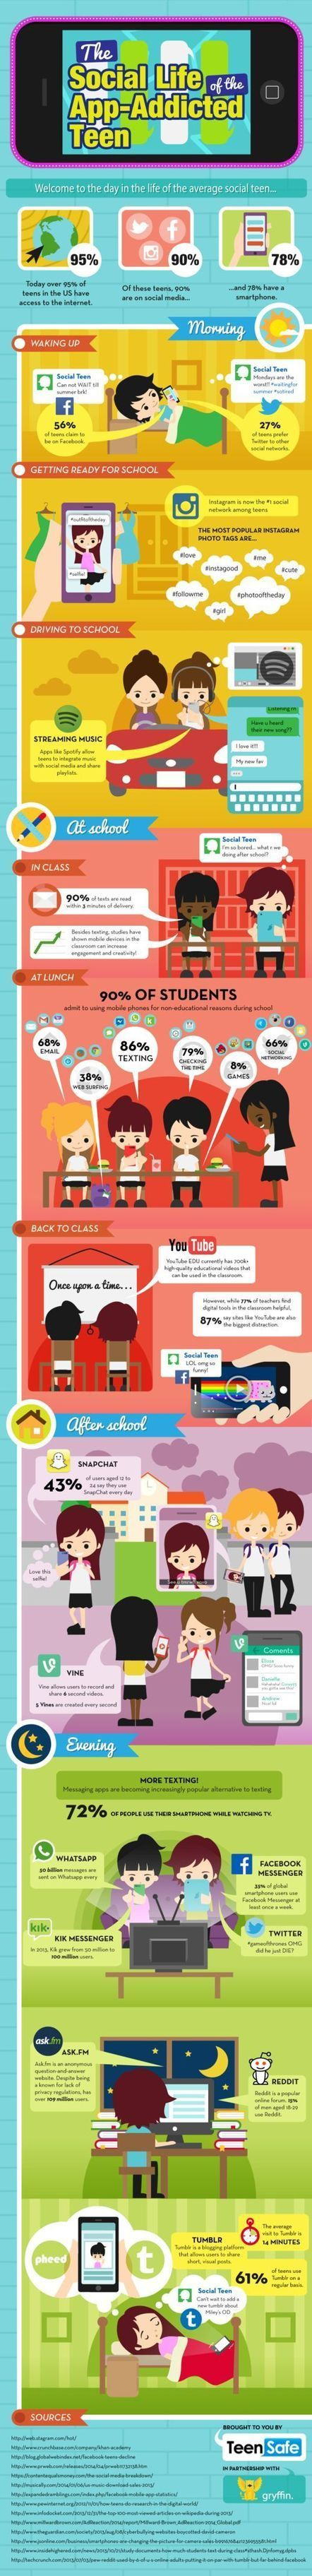 How are teens using Social Media? | Something that matters | Scoop.it